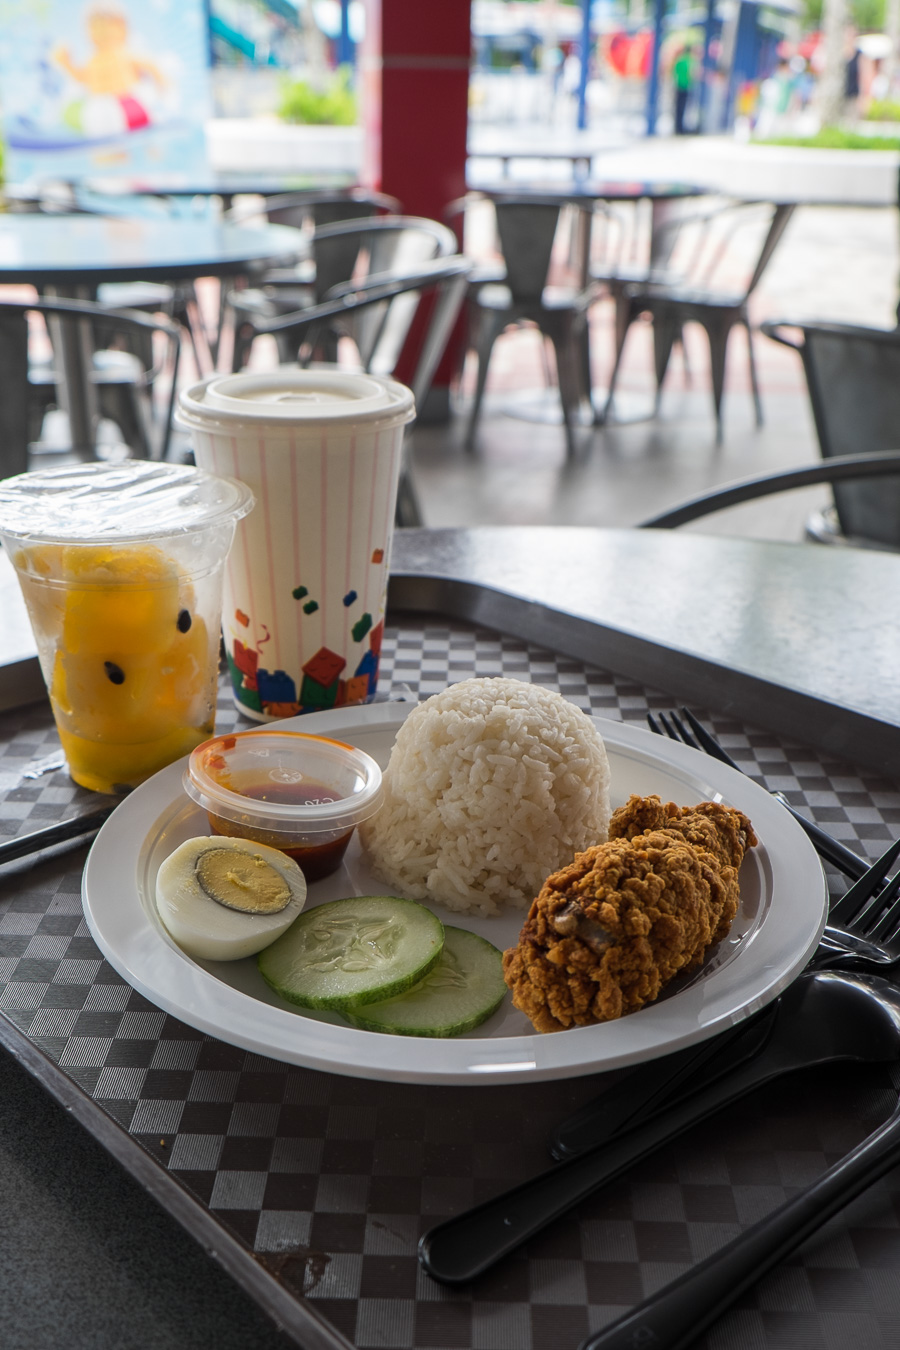 Nasi lemak combo with fruit cup and drink